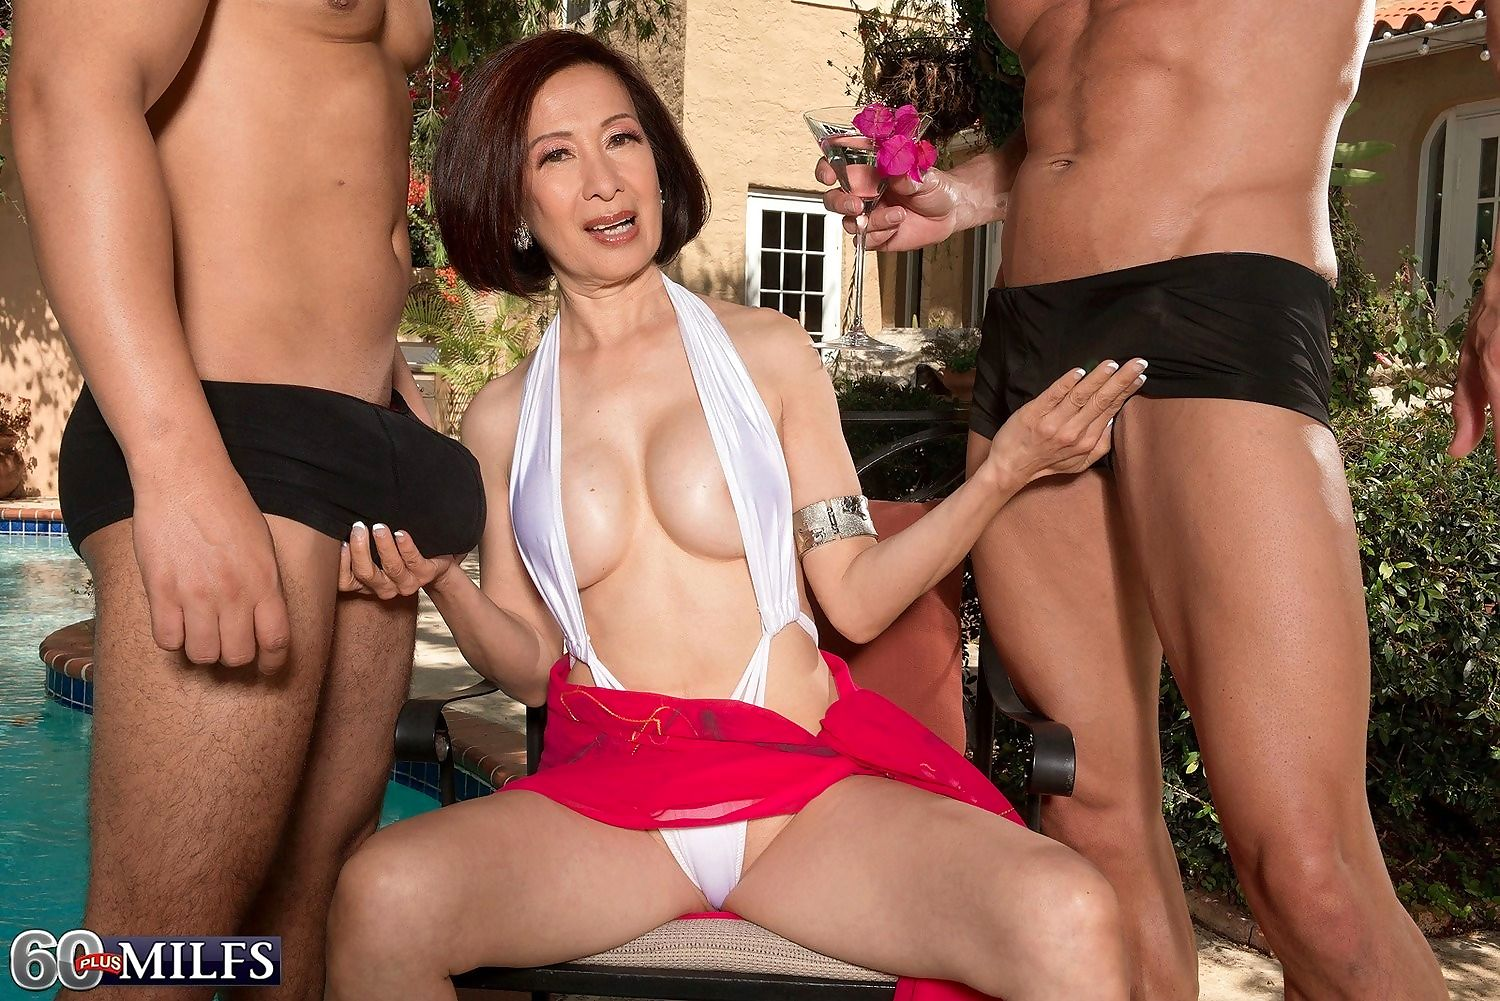 Dirty granny kim anh having two cocks poolside party - part 937